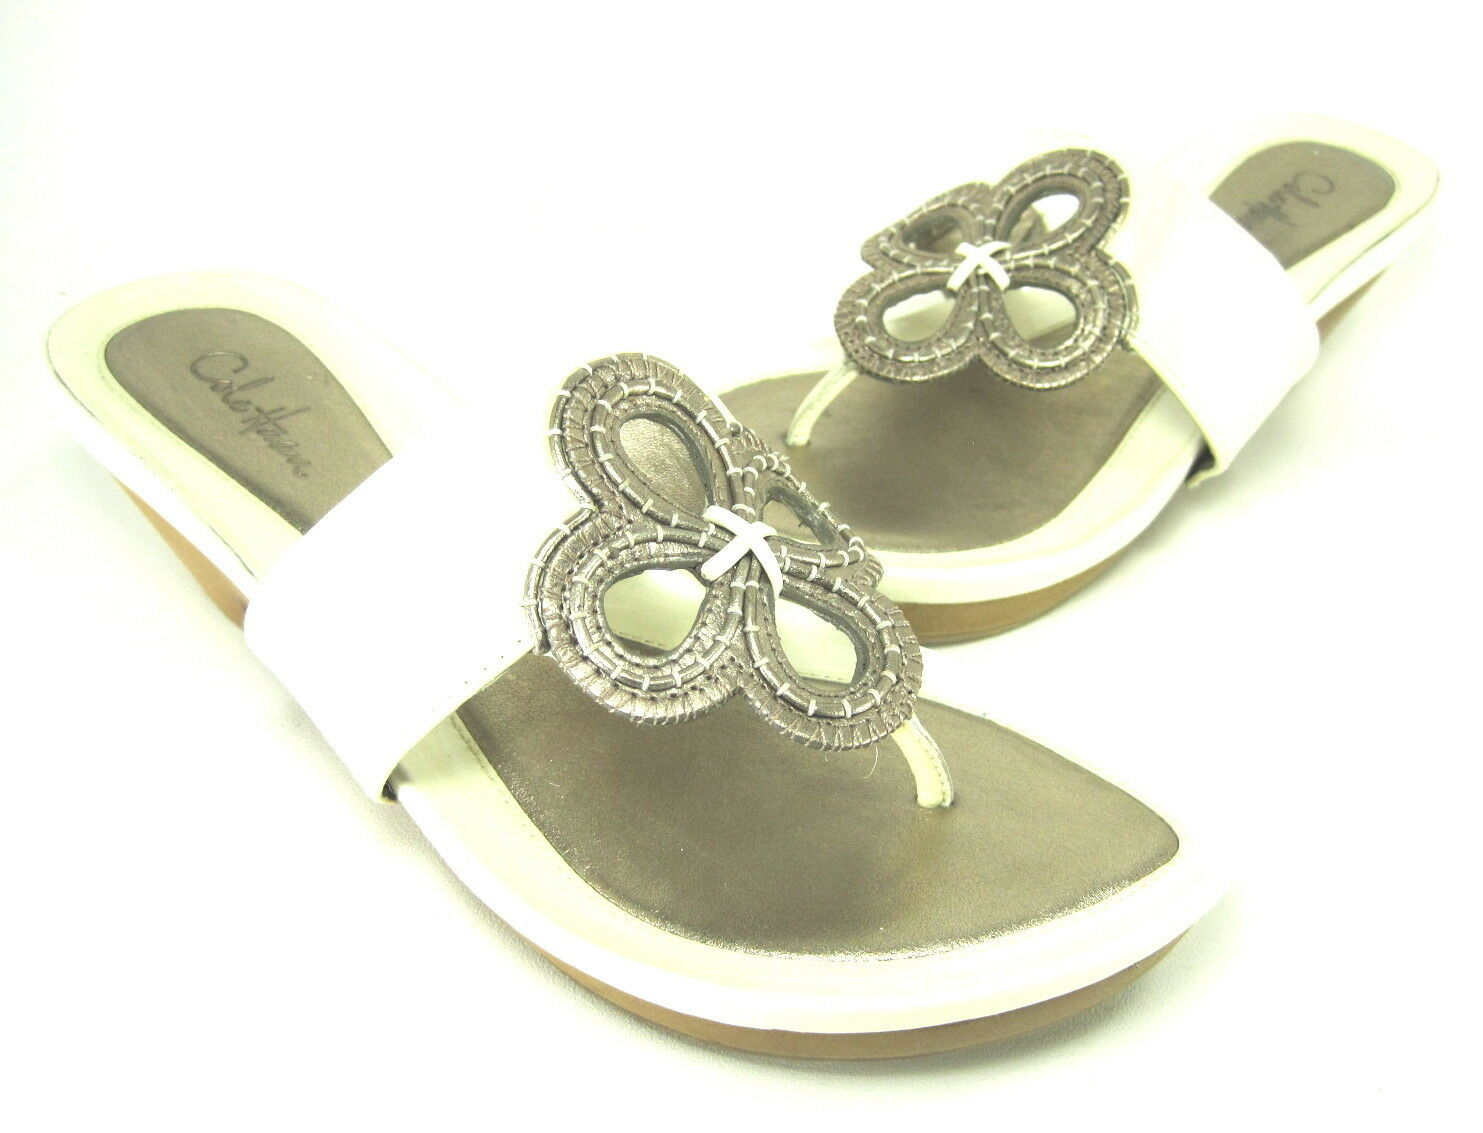 COLE HAAN WOMENS D21791 FLORAL THONG SANDAL CREAM LEATHER US SIZE 6 MEDIUM (B M)